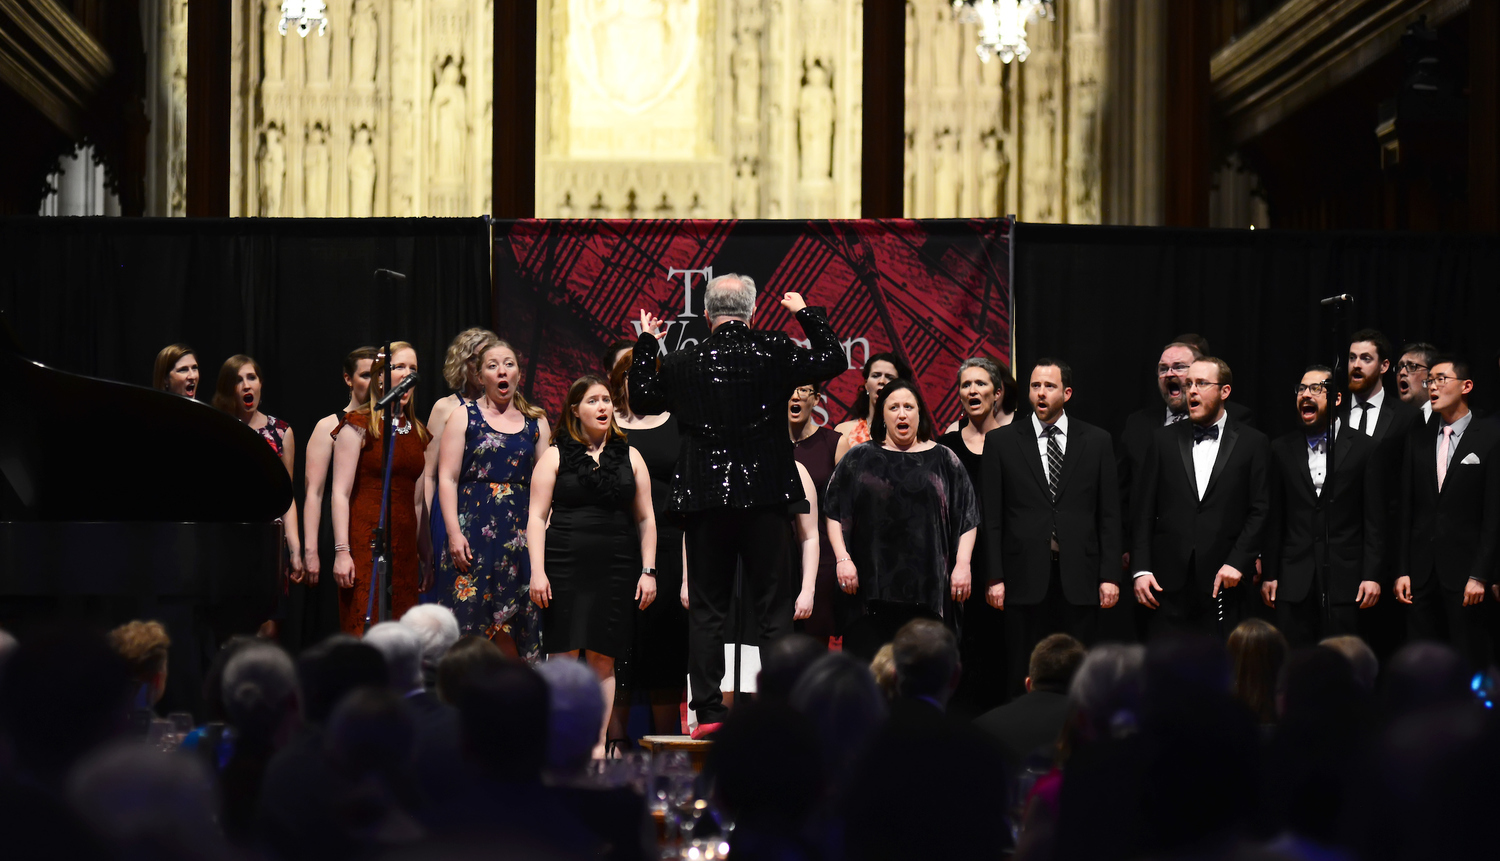 BWW Feature: The Washington Chorus Celebrates Choral Excellence with a WEST SIDE STORY BALL